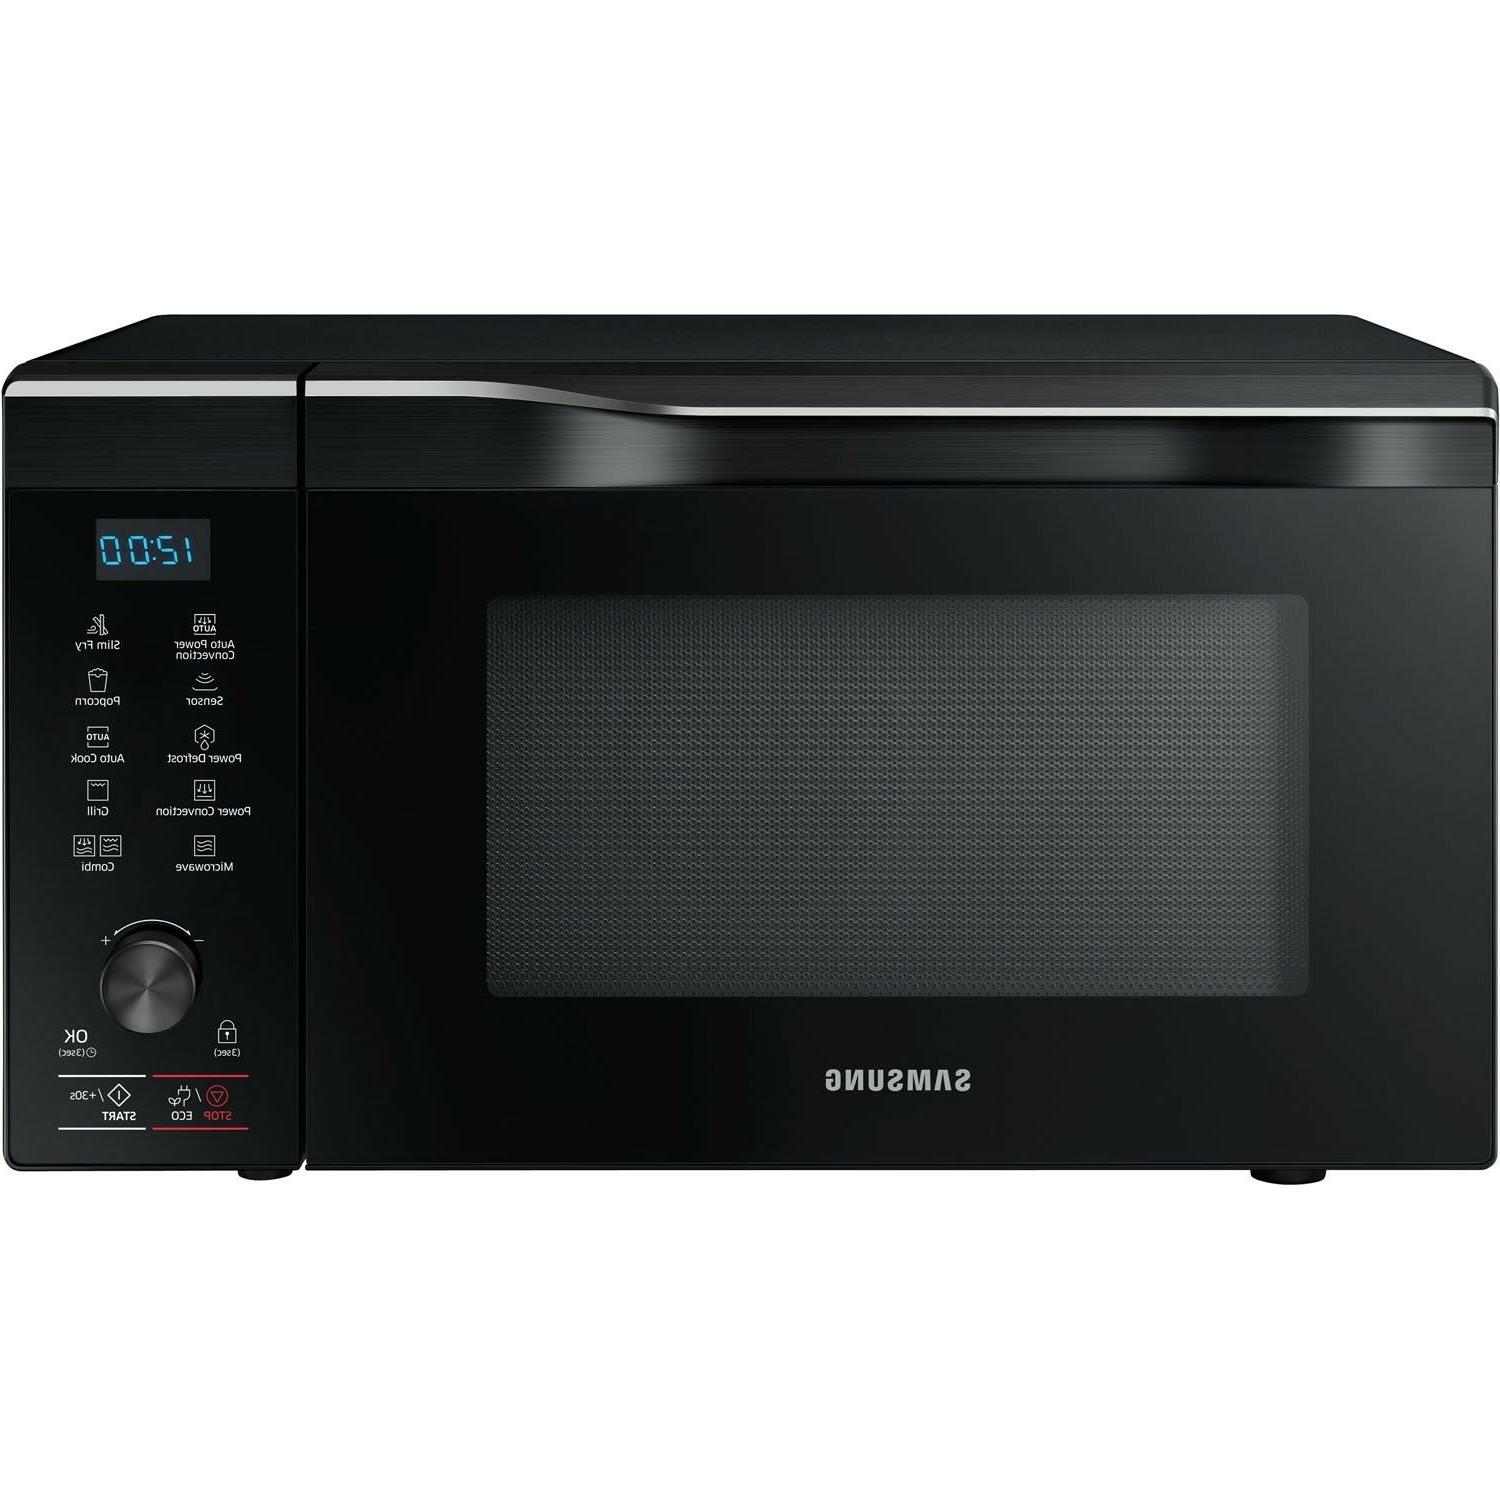 black stainless steel counter top microwave 1